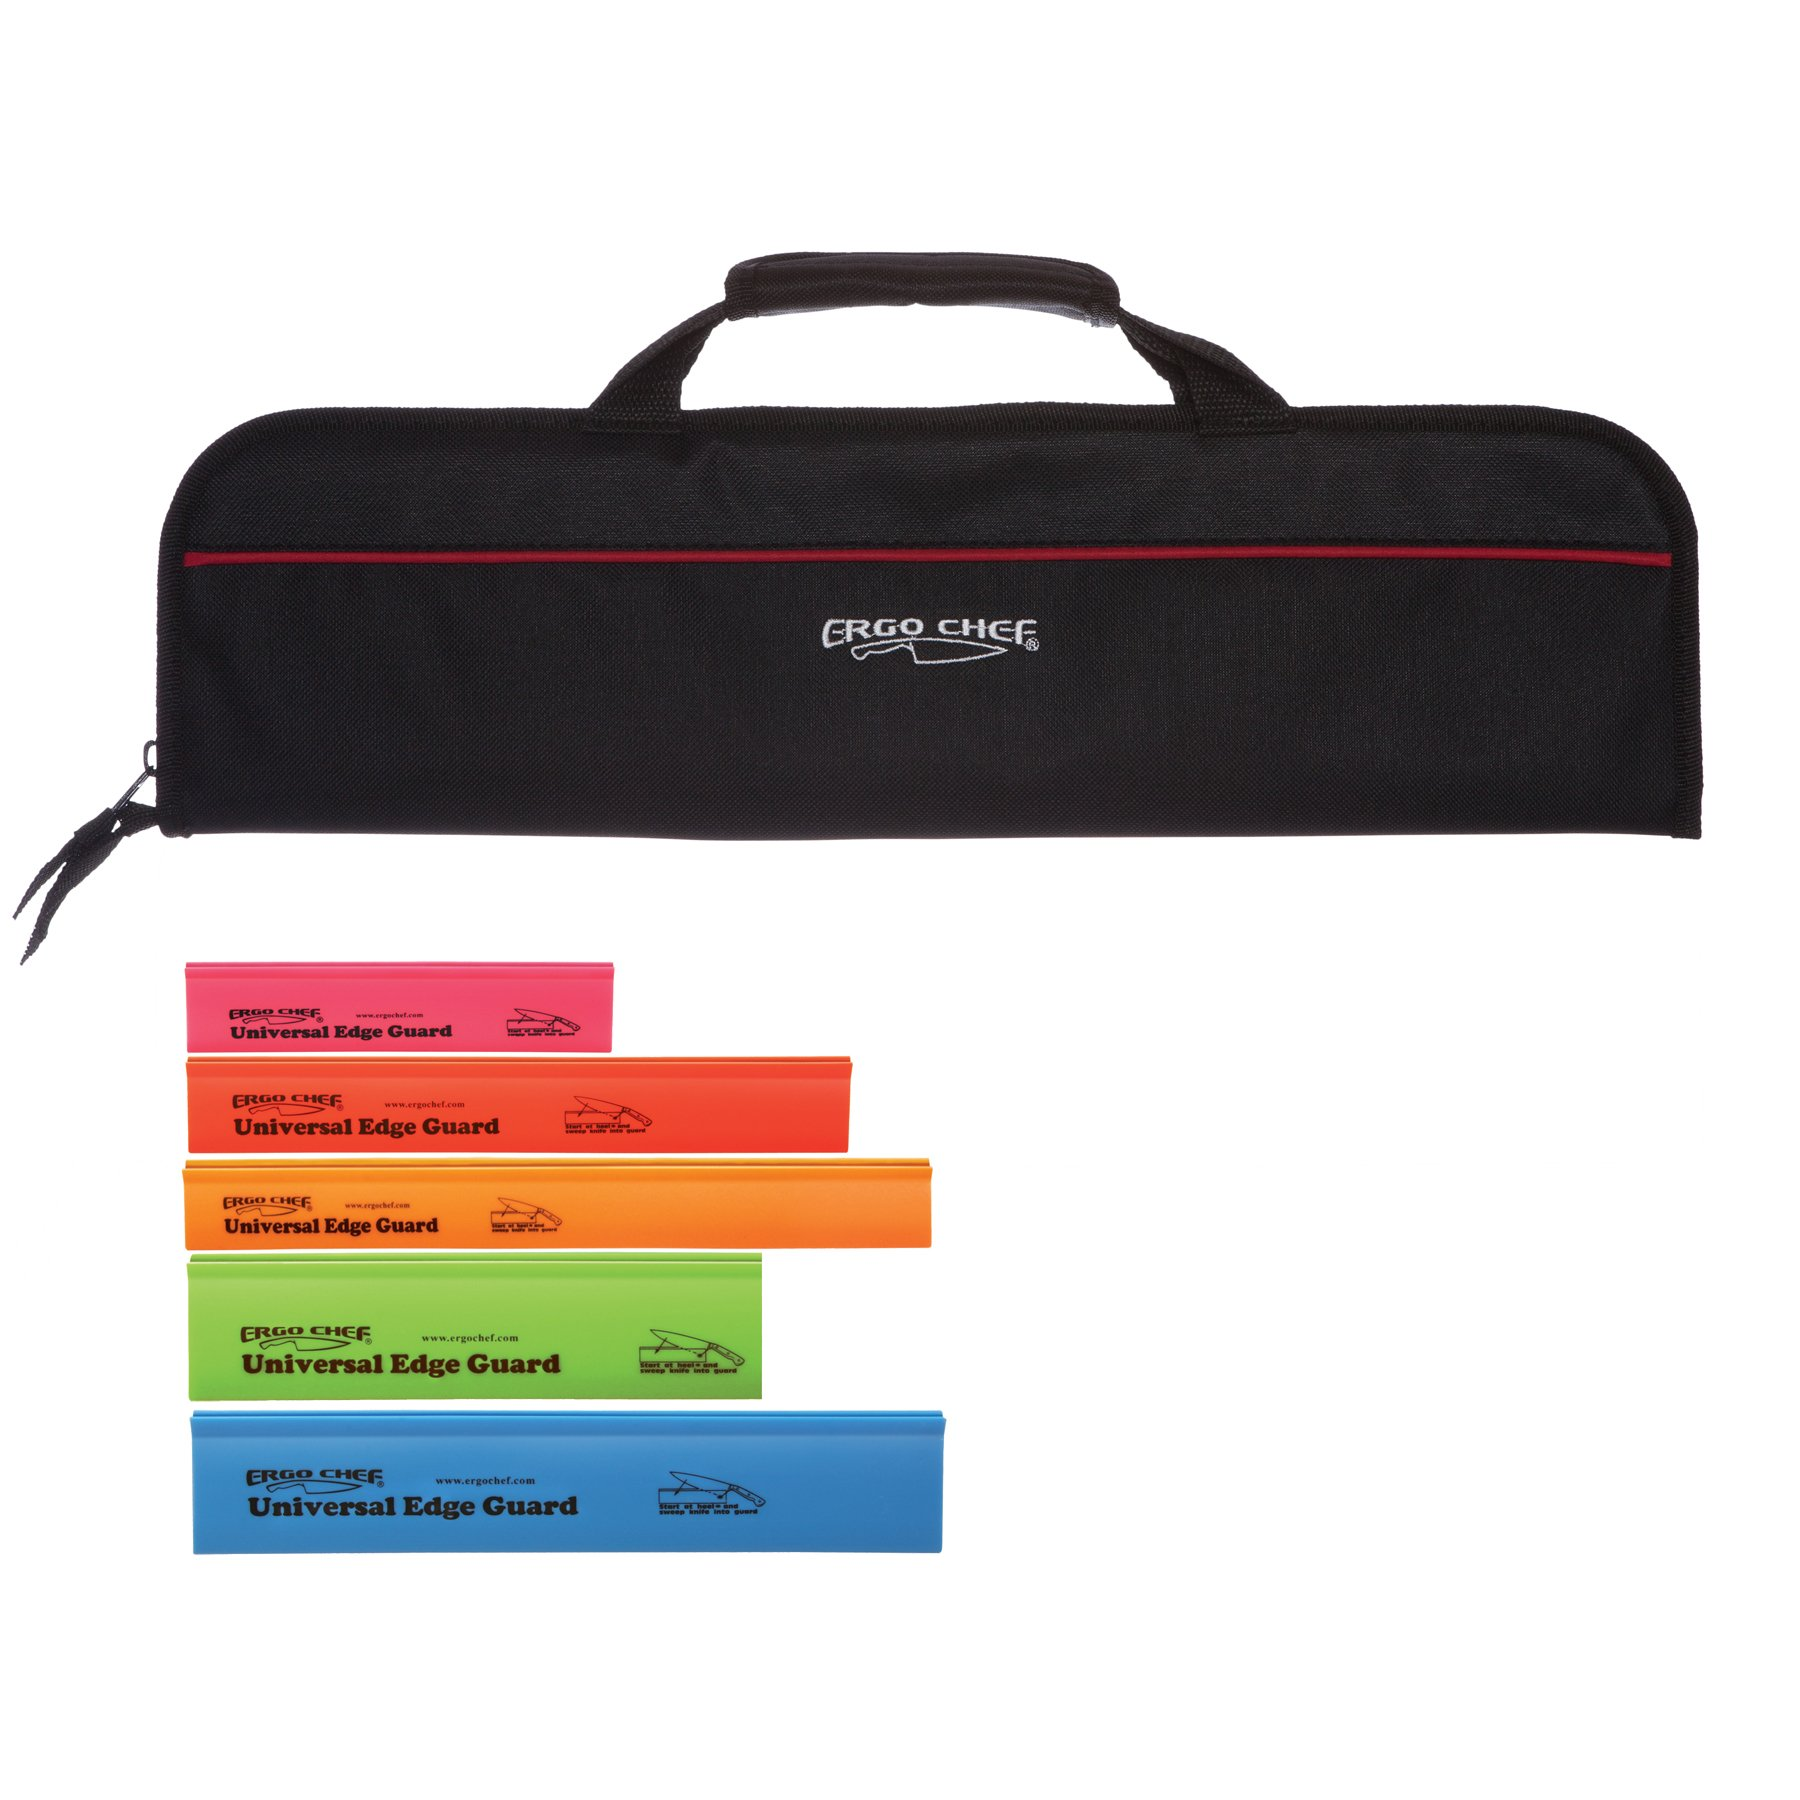 5 Pocket Padded Chef Knife Case Roll with 5 pc. Edge Guards (Black 5 Pocket bag w/5pc. Multi-Color Edge guards)